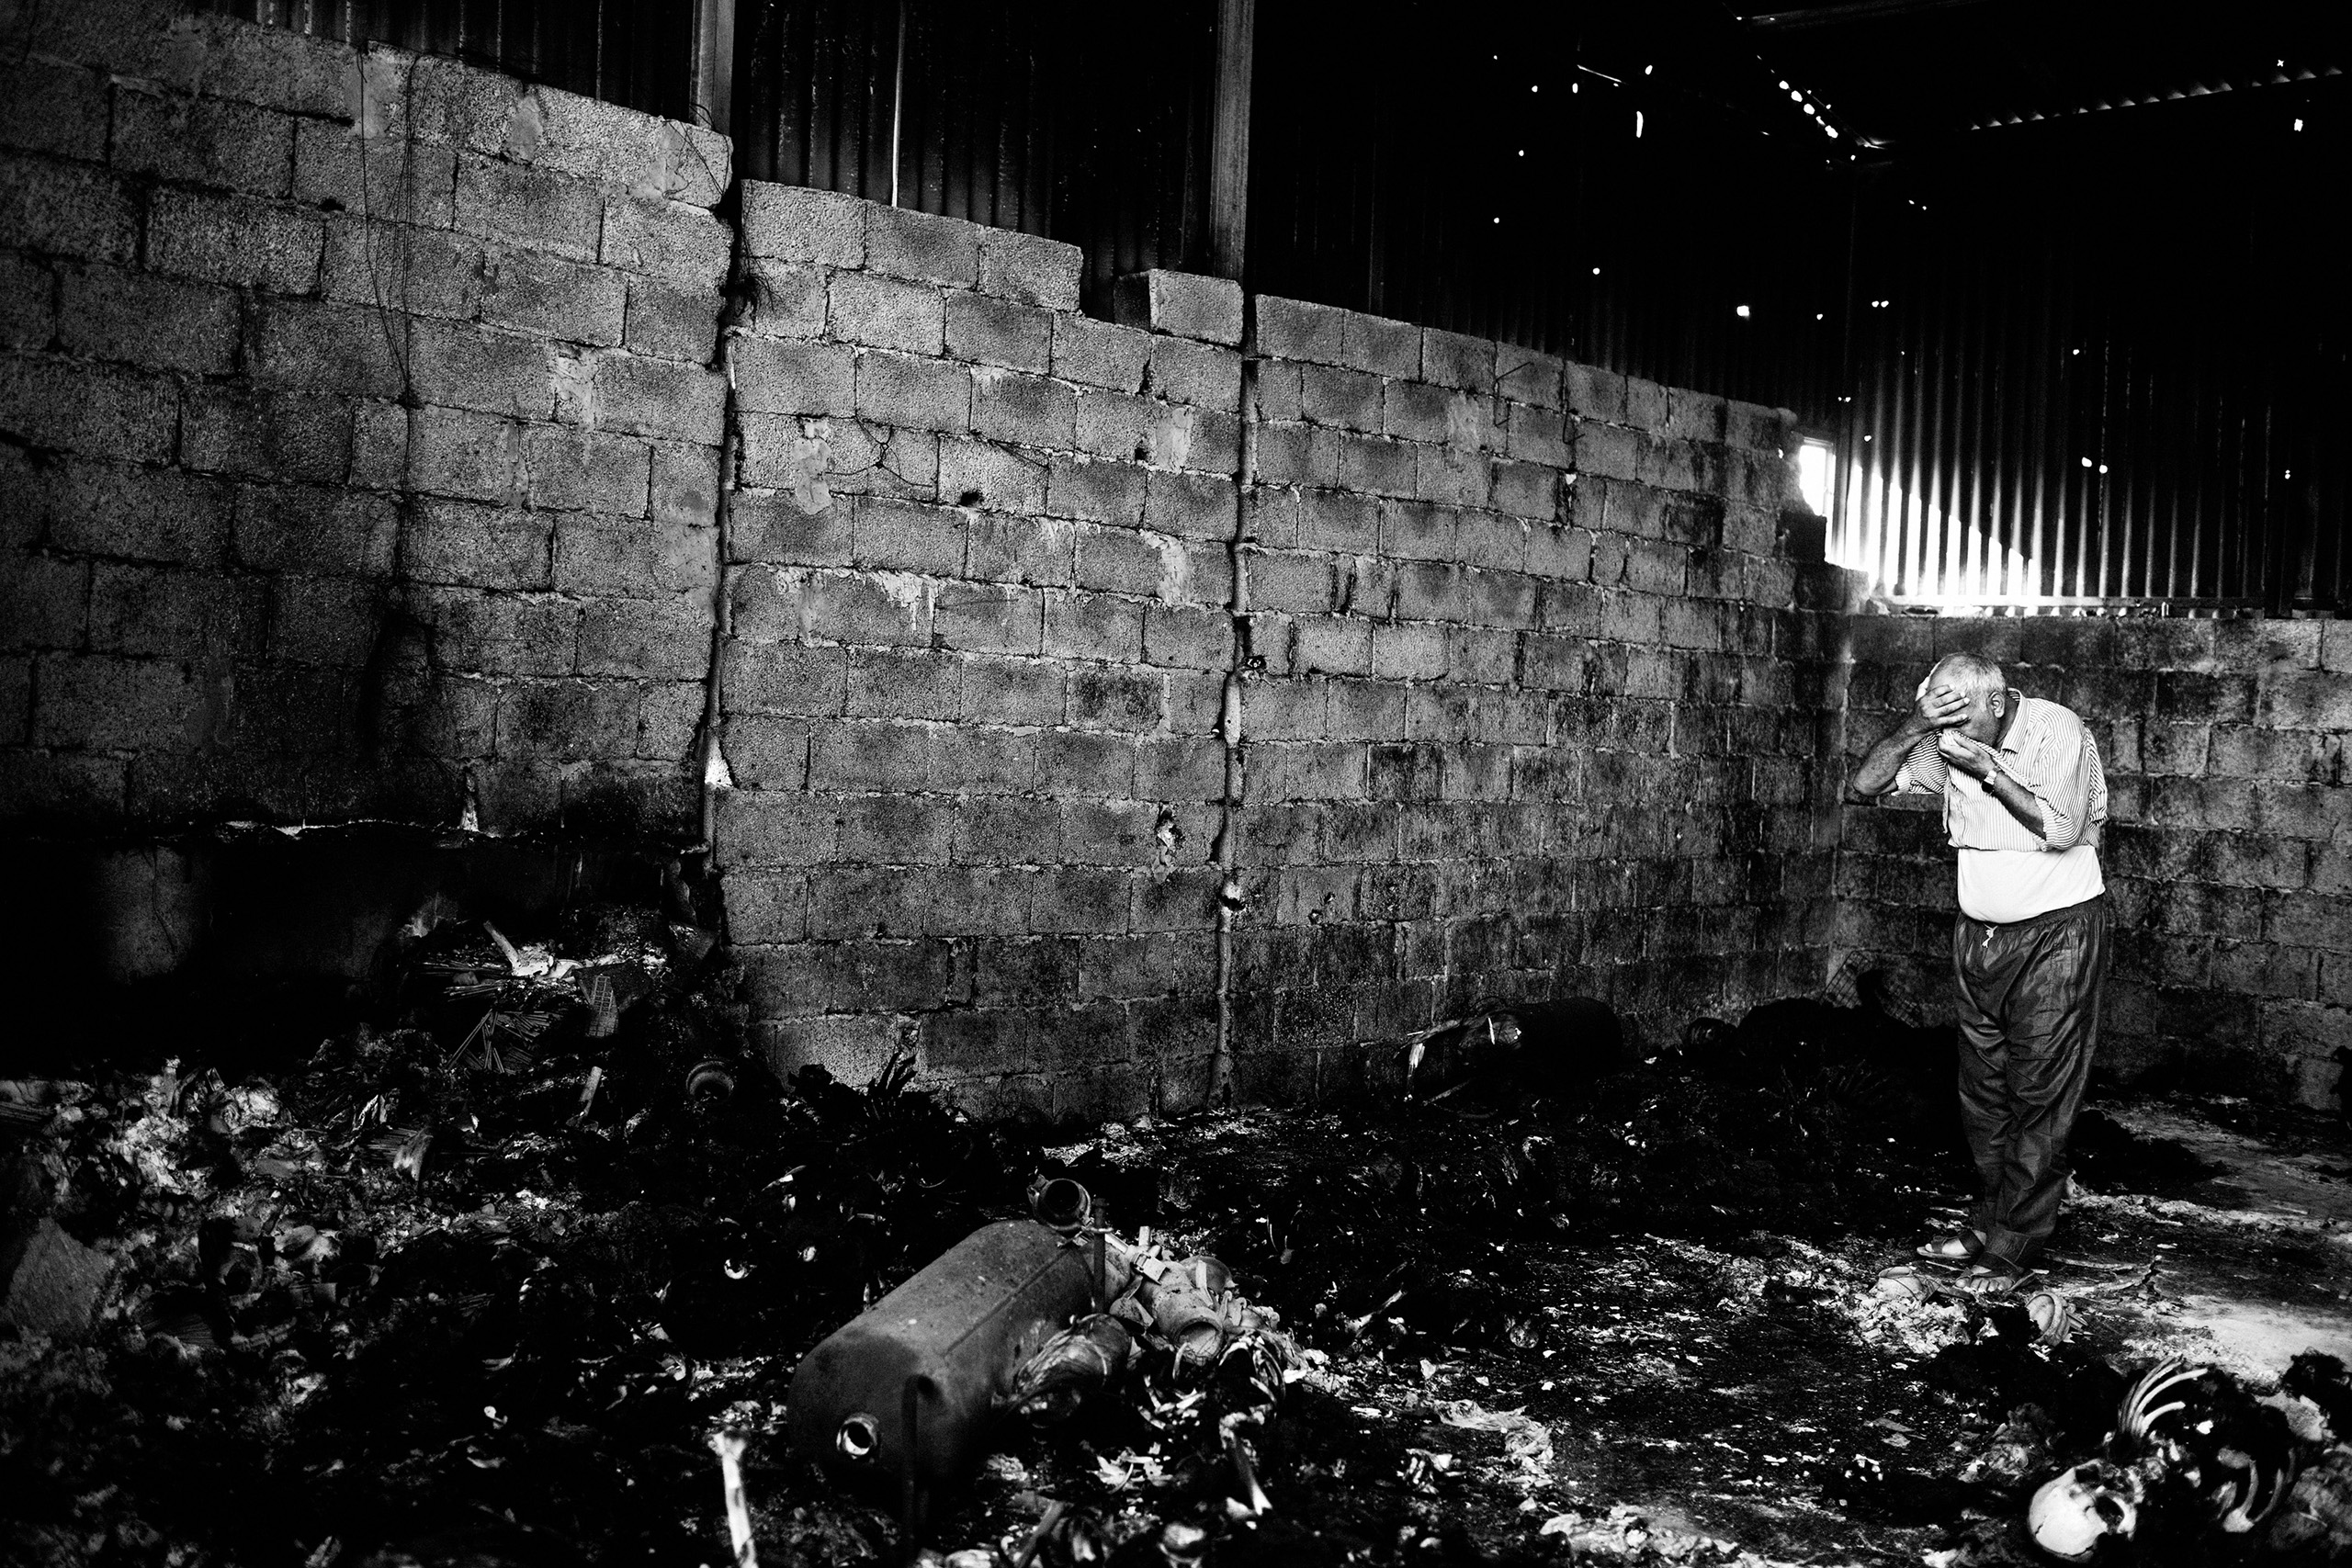 A Libyan man inside the warehouse that holds the remains of 50 burned bodies. Suburbs of Tripoli, Libya. Aug. 27, 2011.